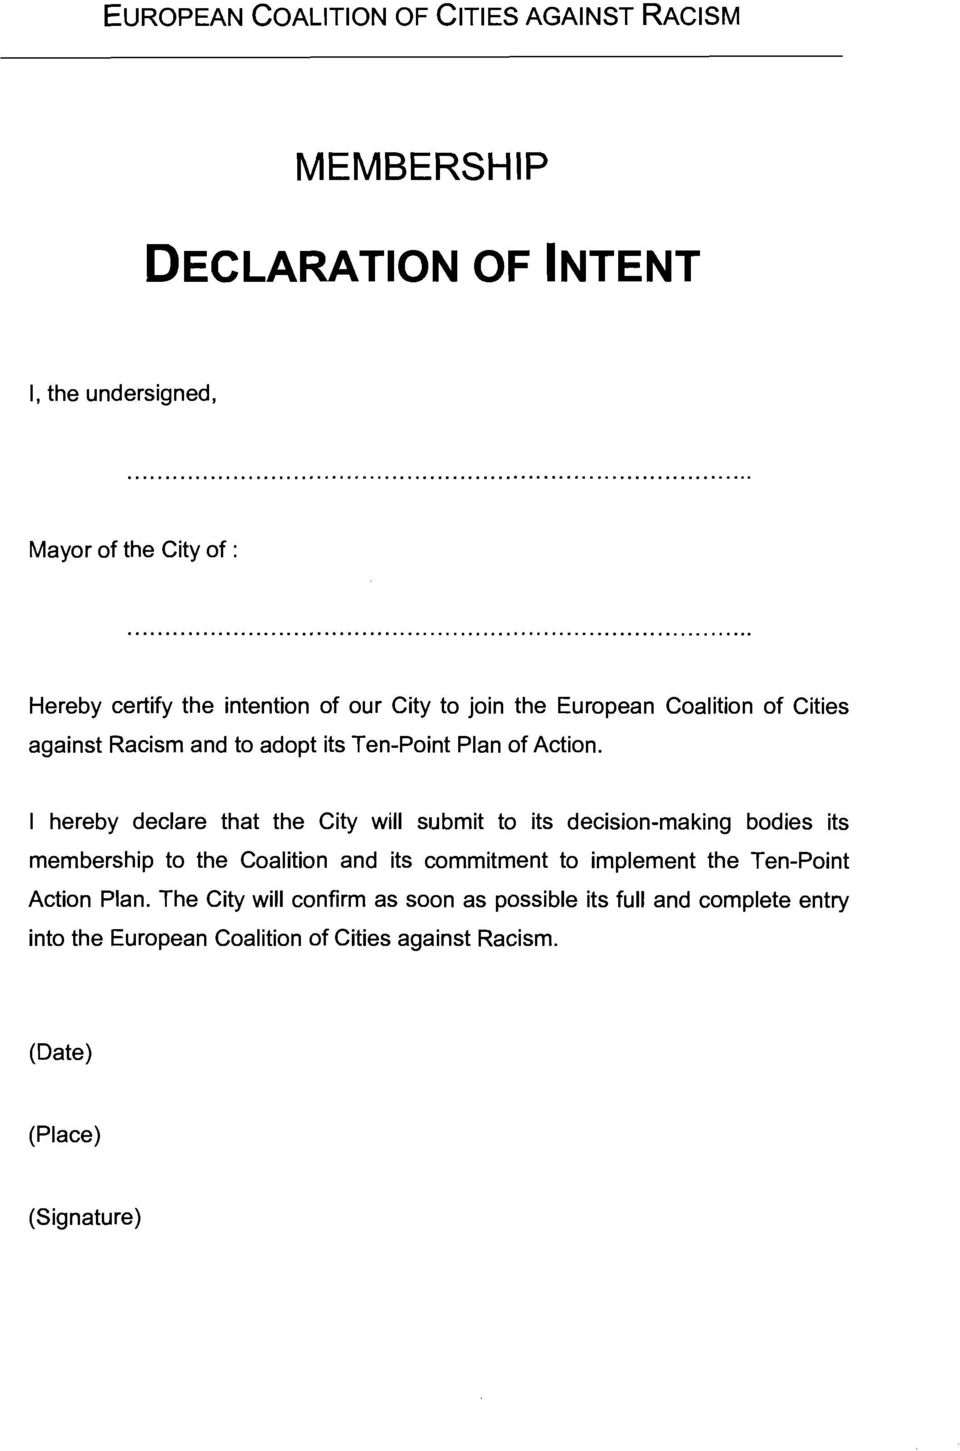 I hereby declare that the City will submit to its decision-making bodies its membership to the Coalition and its commitment to implement the